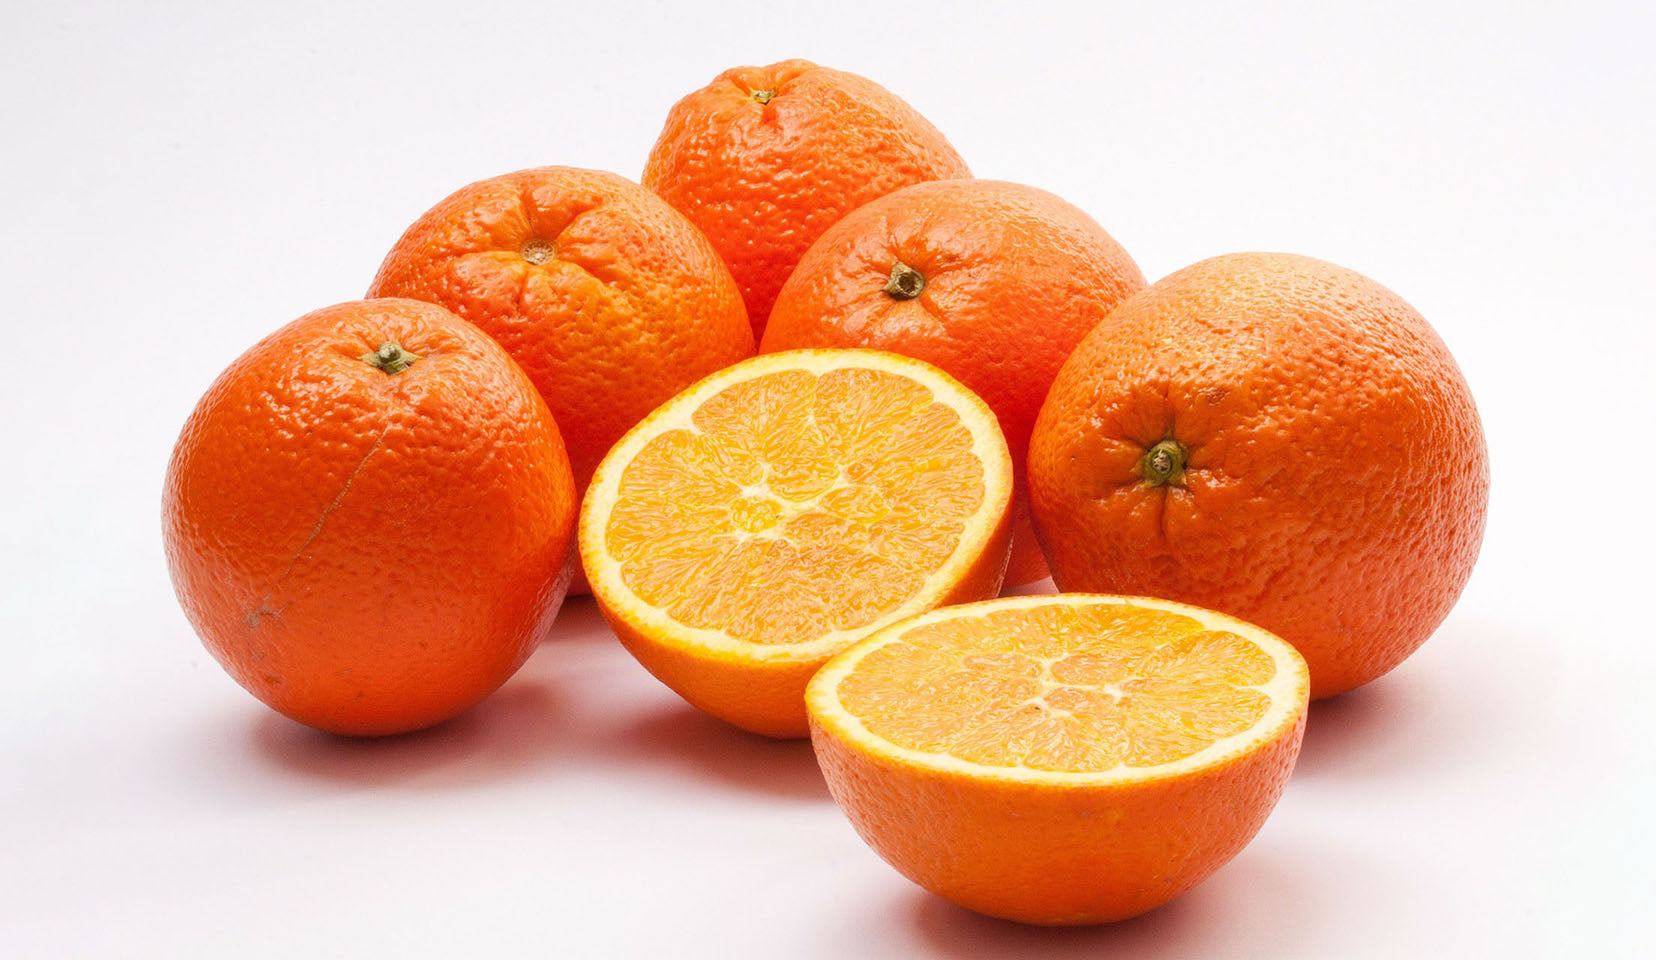 Orange Extract May Help Decrease Fat Mass